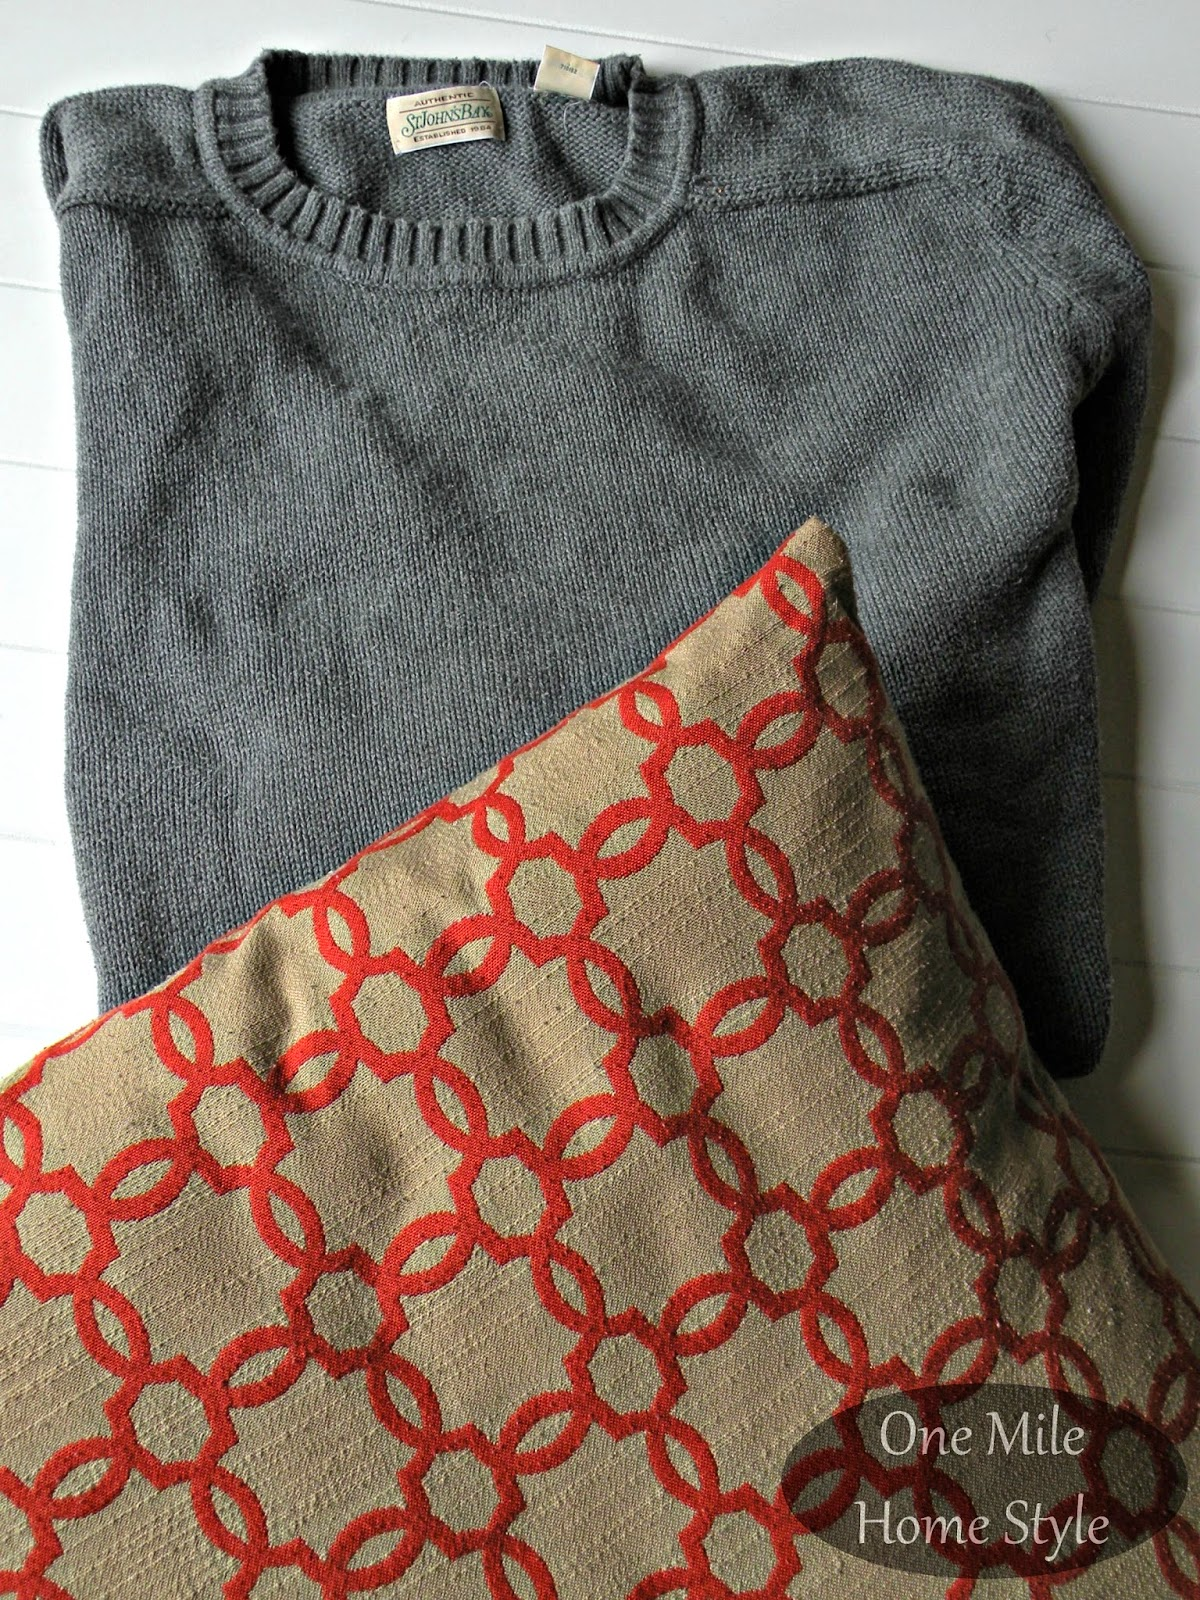 Pillow and thrifted sweater - easy sweater pillow DIY